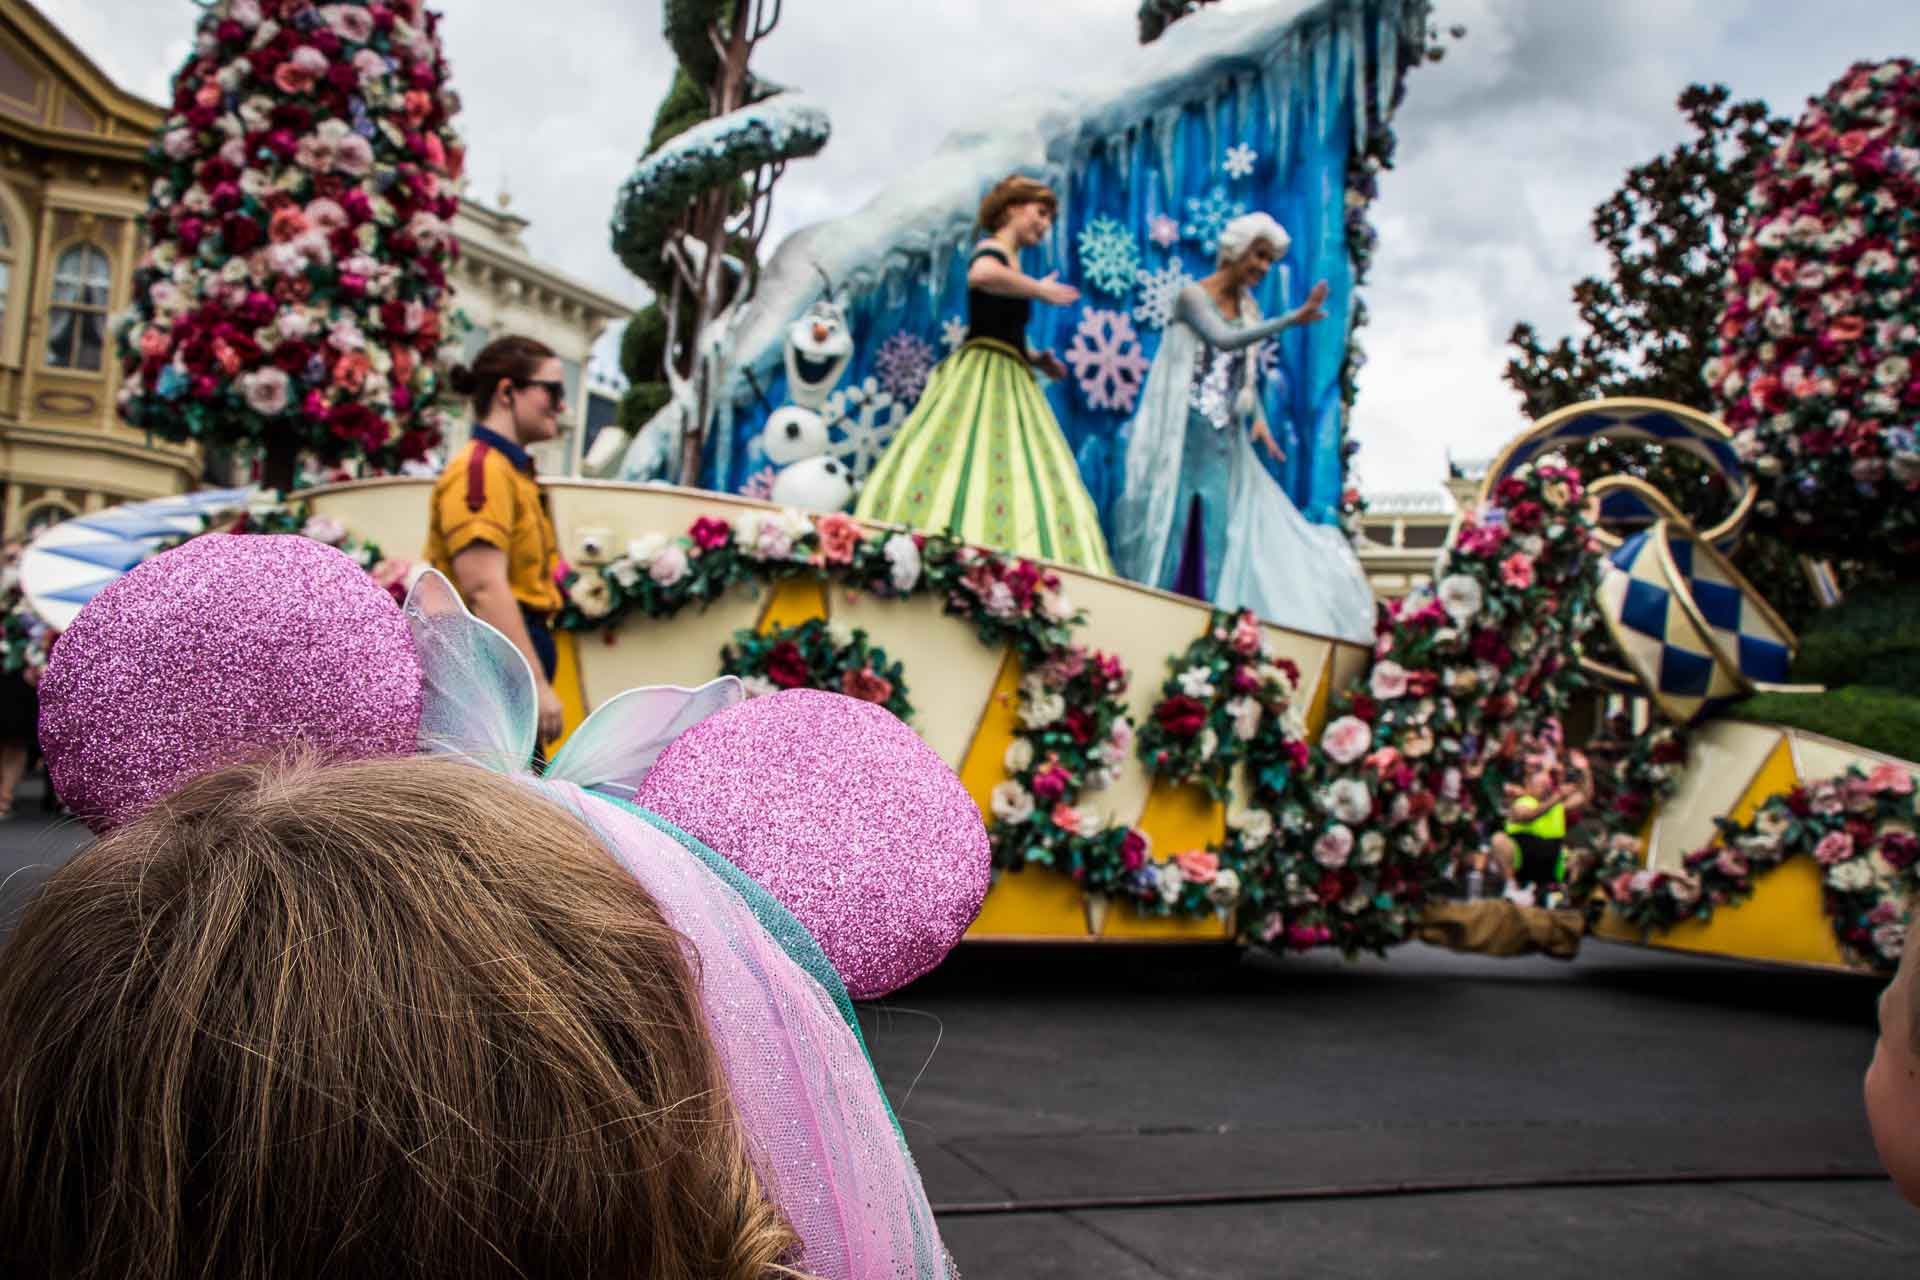 Family Can Travel - Things I Did't Know about Visiting Magic Kingdom - Front Row Disney Parade Seats - Disney Festival of Fantasy Parade Dining Package